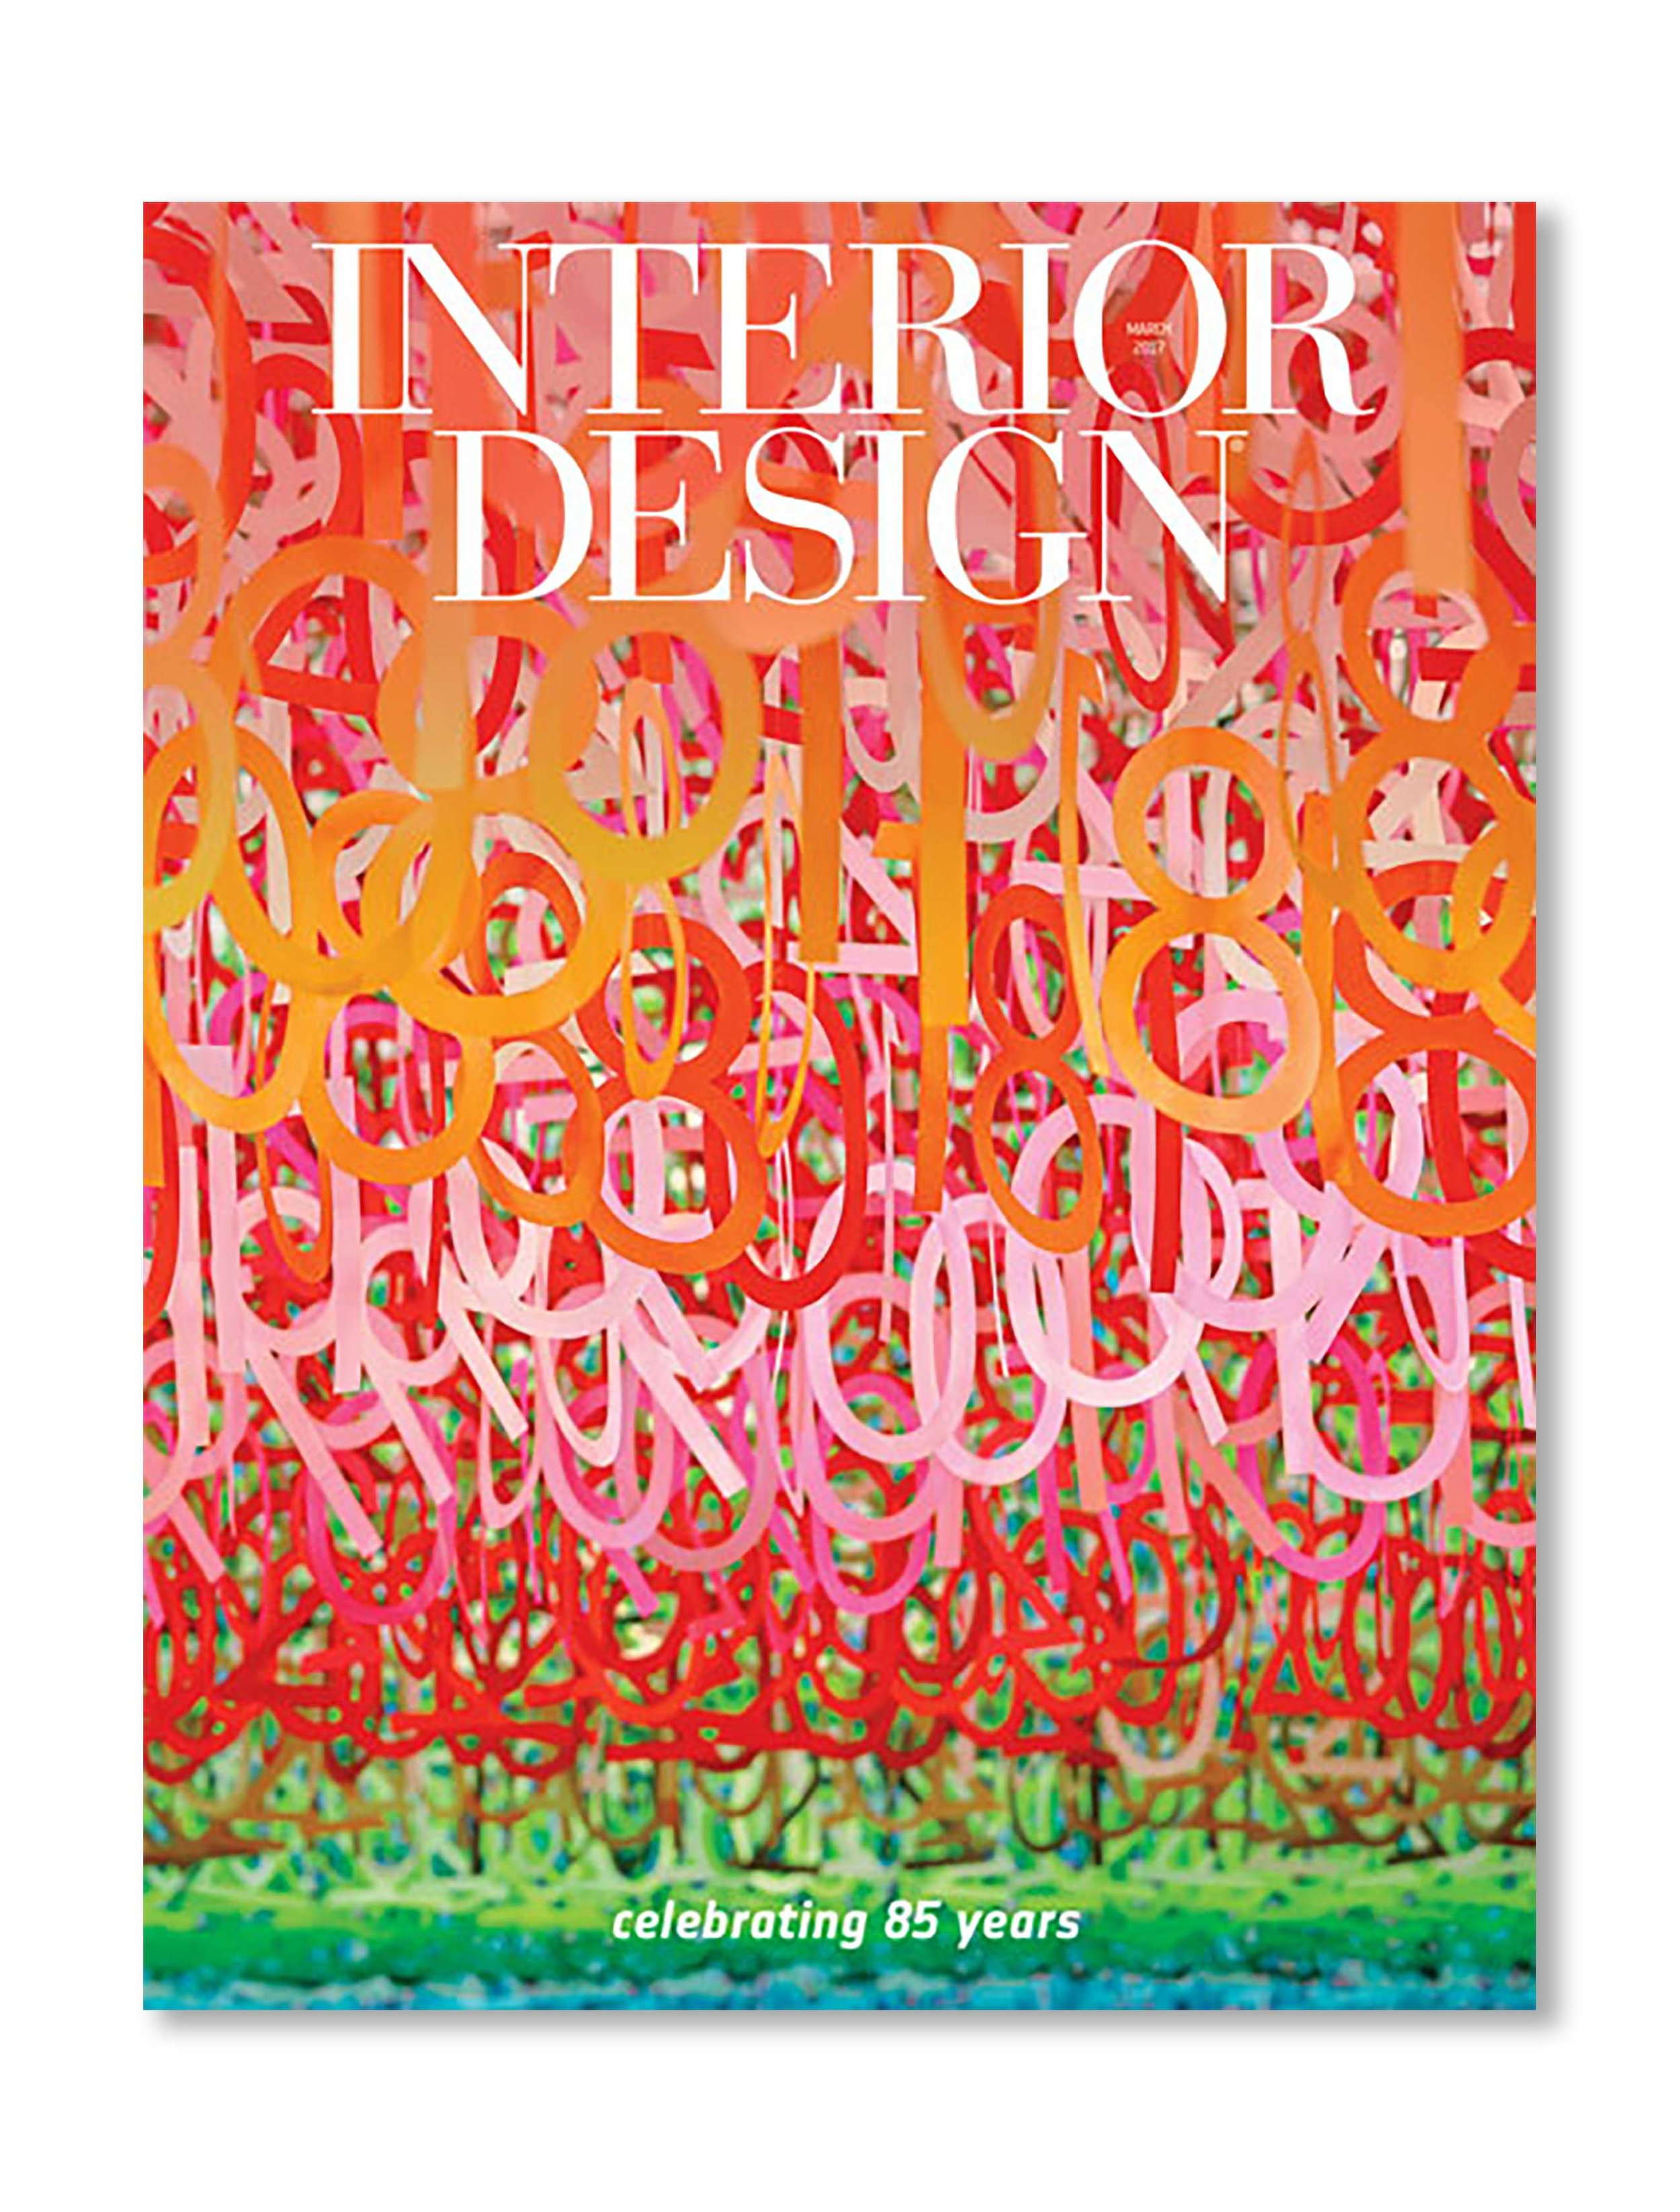 Bean Buro_Interior Design New York_March 17_Cover.jpg